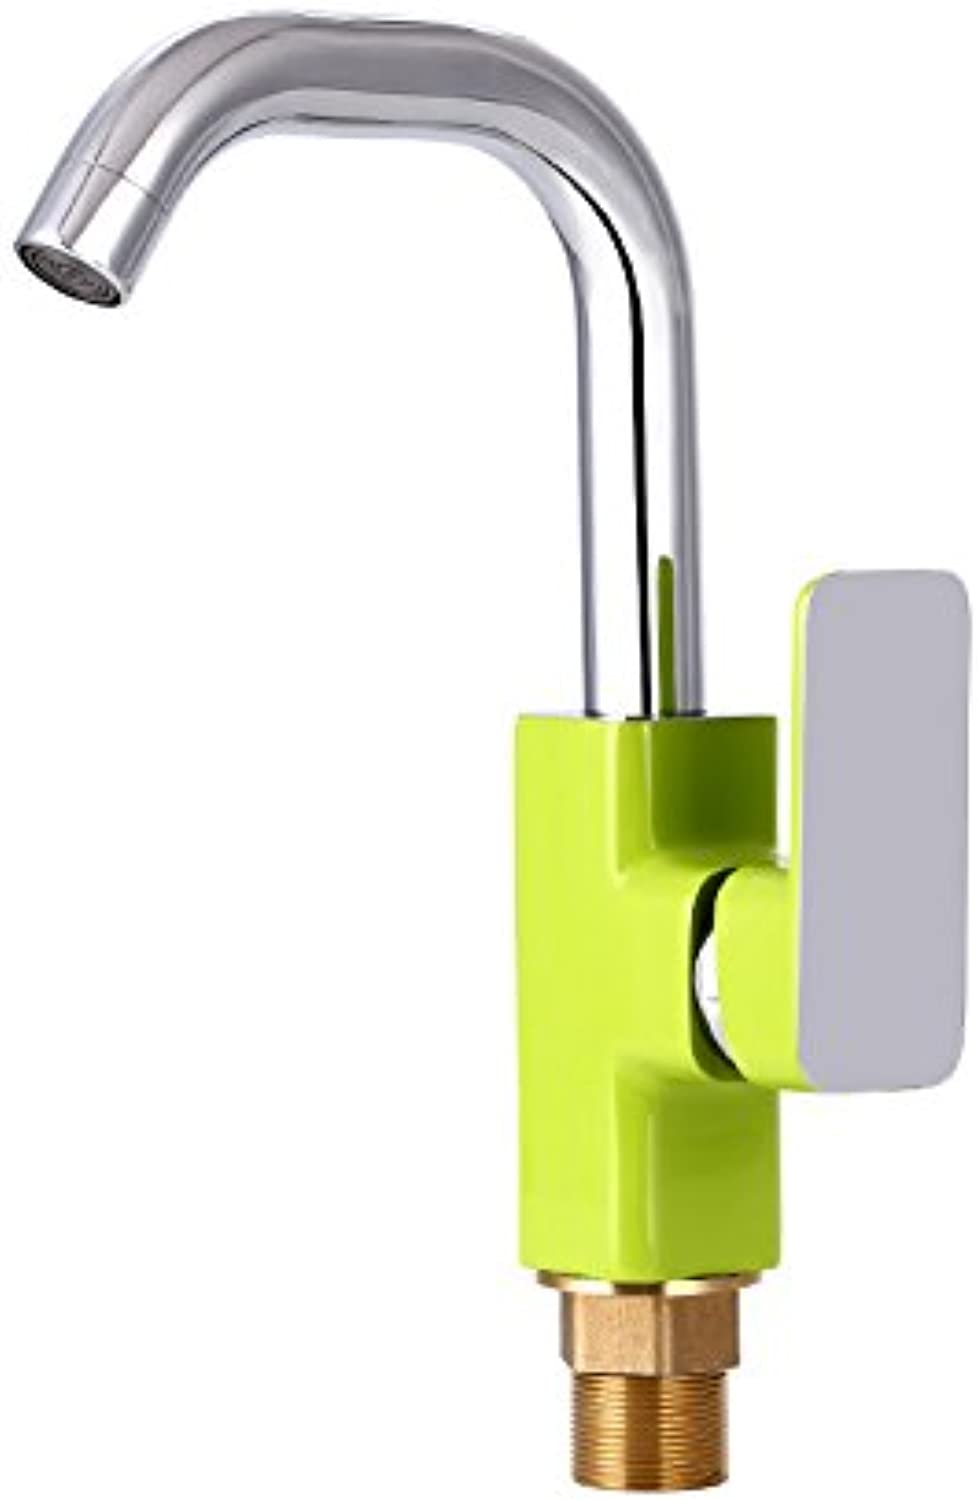 Hlluya Professional Sink Mixer Tap Kitchen Faucet Enamel paint water faucet hot and cold mixing valve basin universal